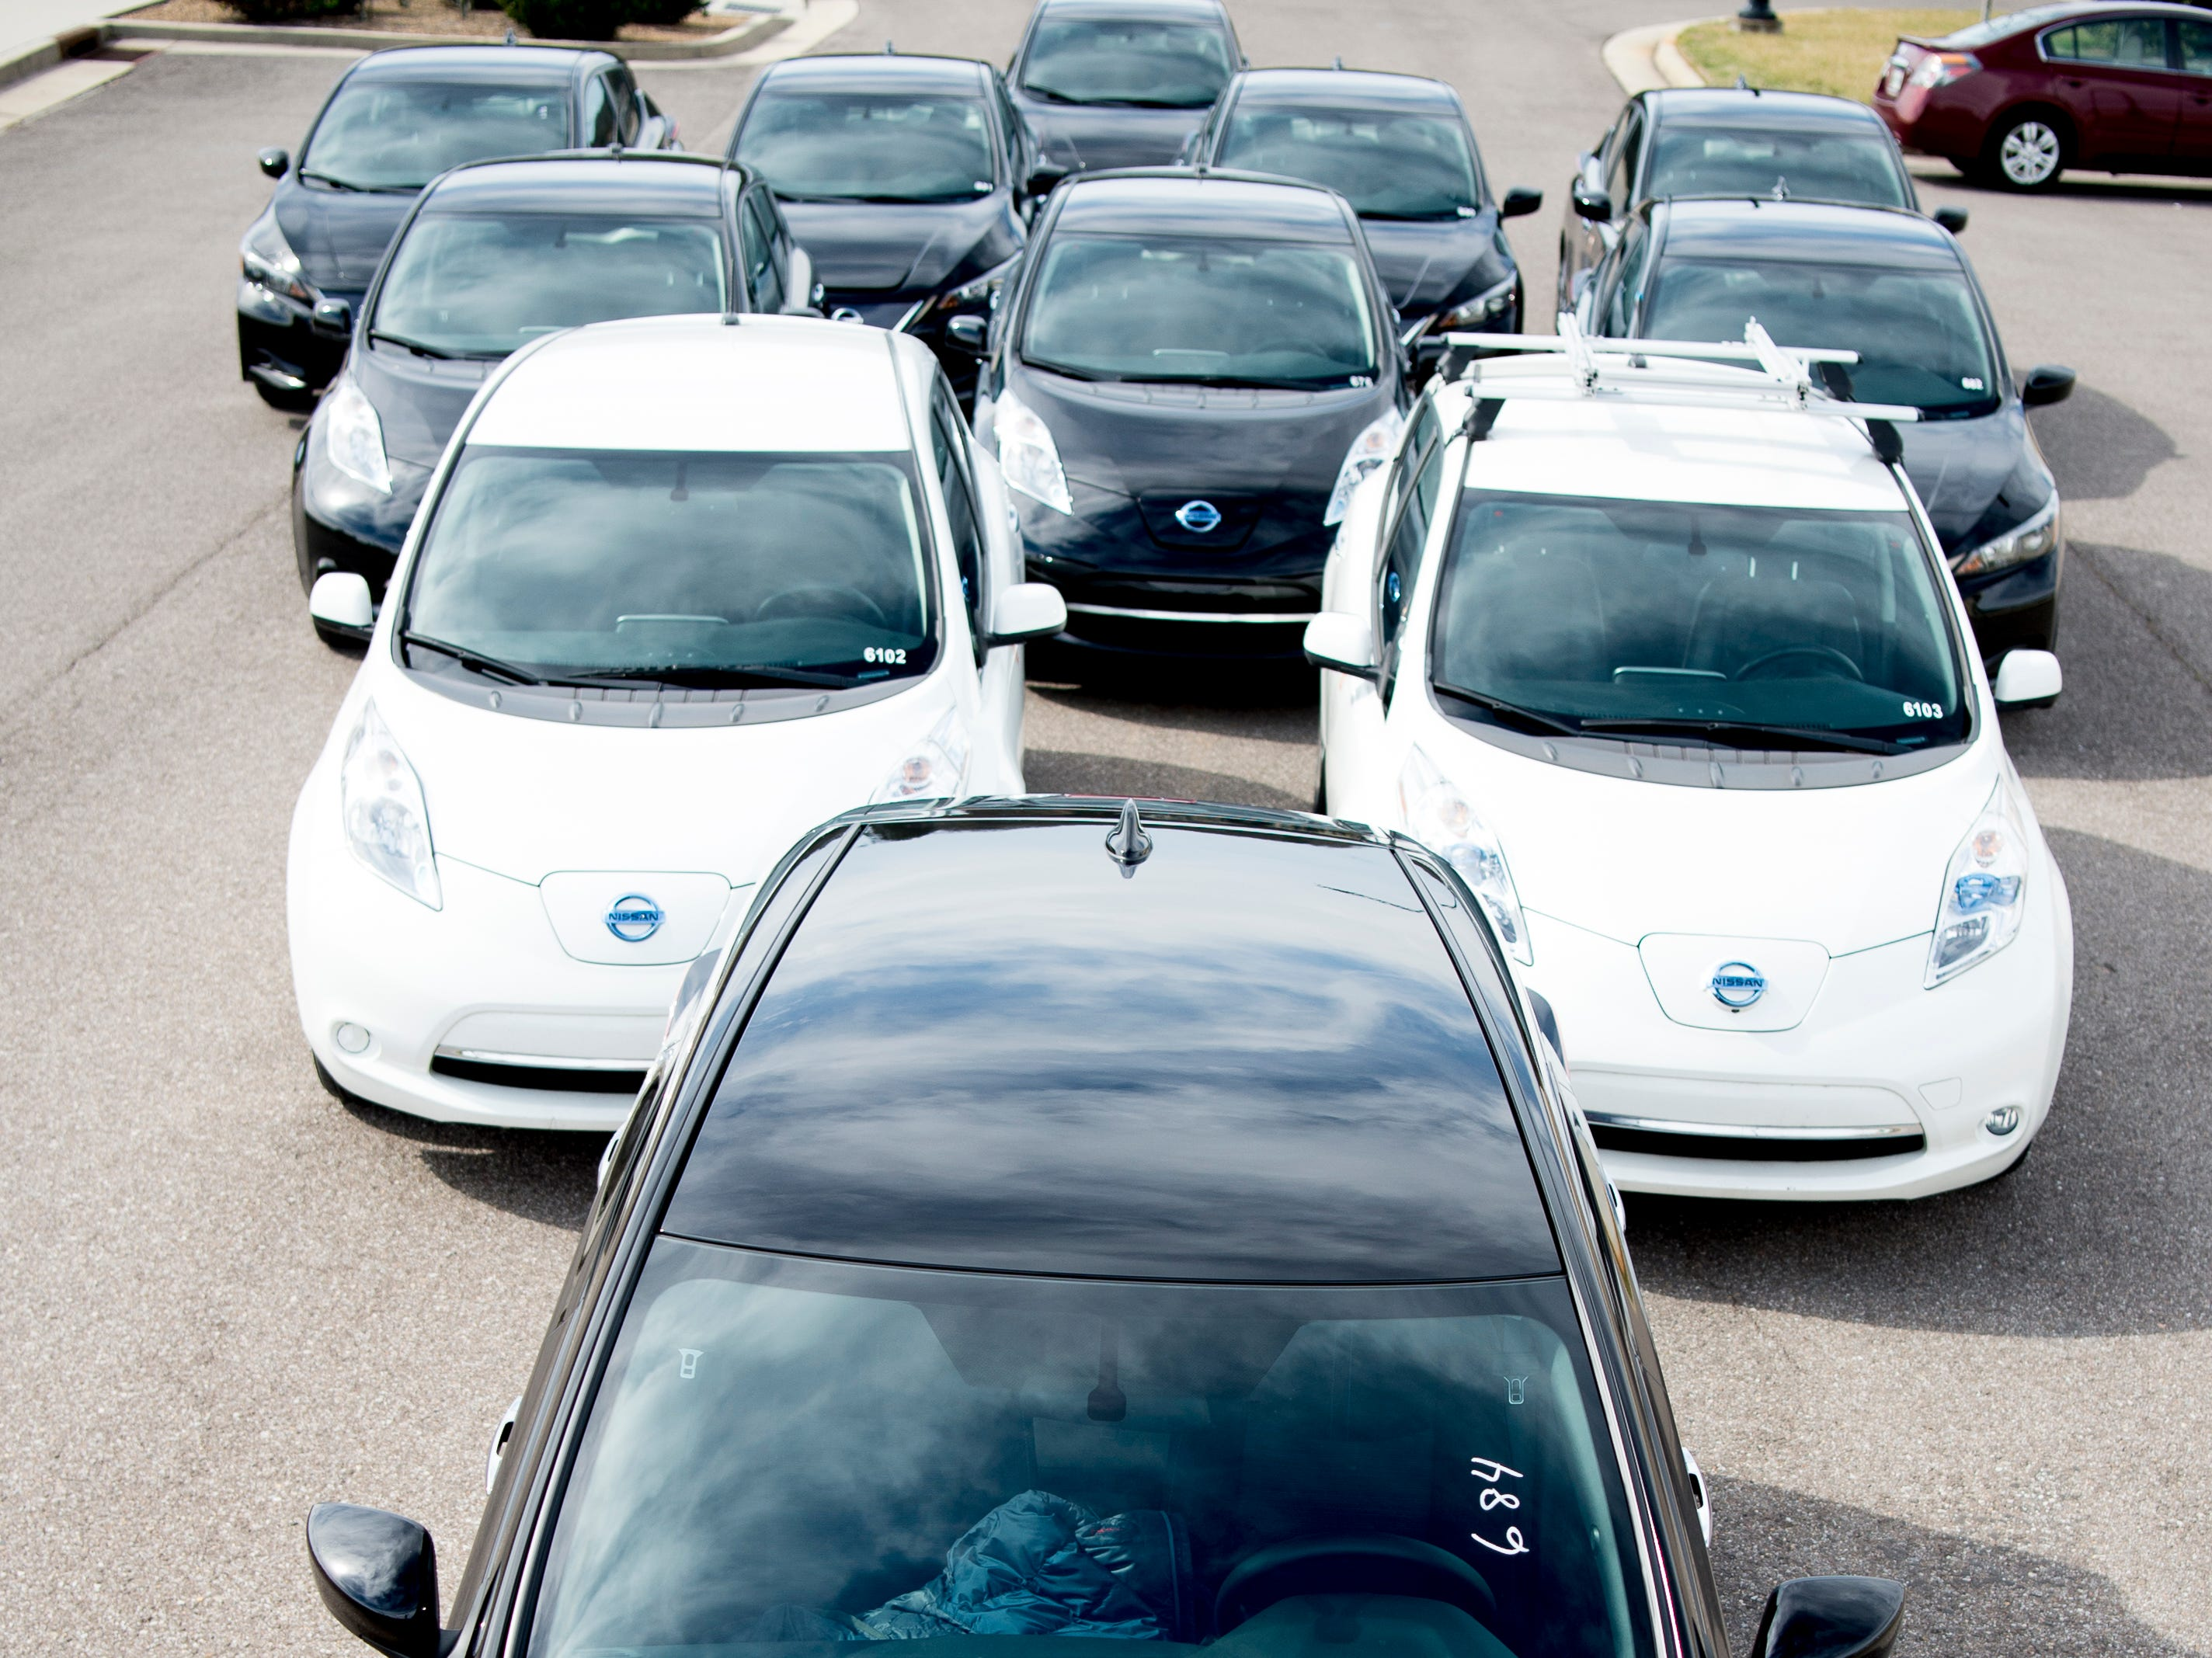 The 11-car fleet of Nissan Leaf electric vehicles owned by the University of Tennessee photographed at Cherokee Farm campus in Knoxville, Tennessee on Thursday, February 14, 2019. UT has a fleet of 11 Nissan Leaf electric vehicles and is expecting to grow the fleet's size over the coming years.